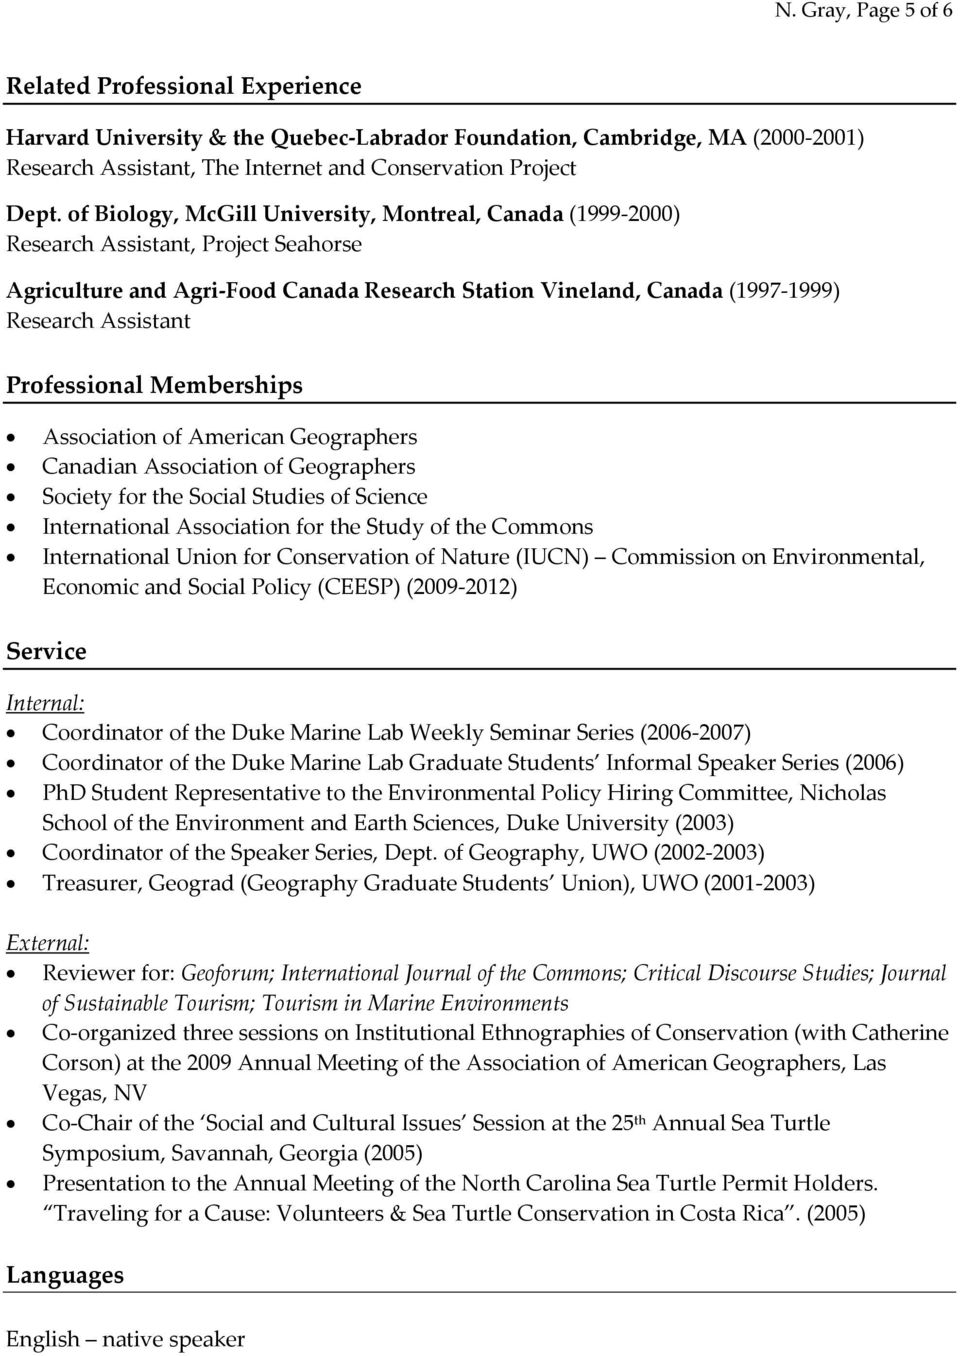 Professional Memberships Association of American Geographers Canadian Association of Geographers Society for the Social Studies of Science International Association for the Study of the Commons